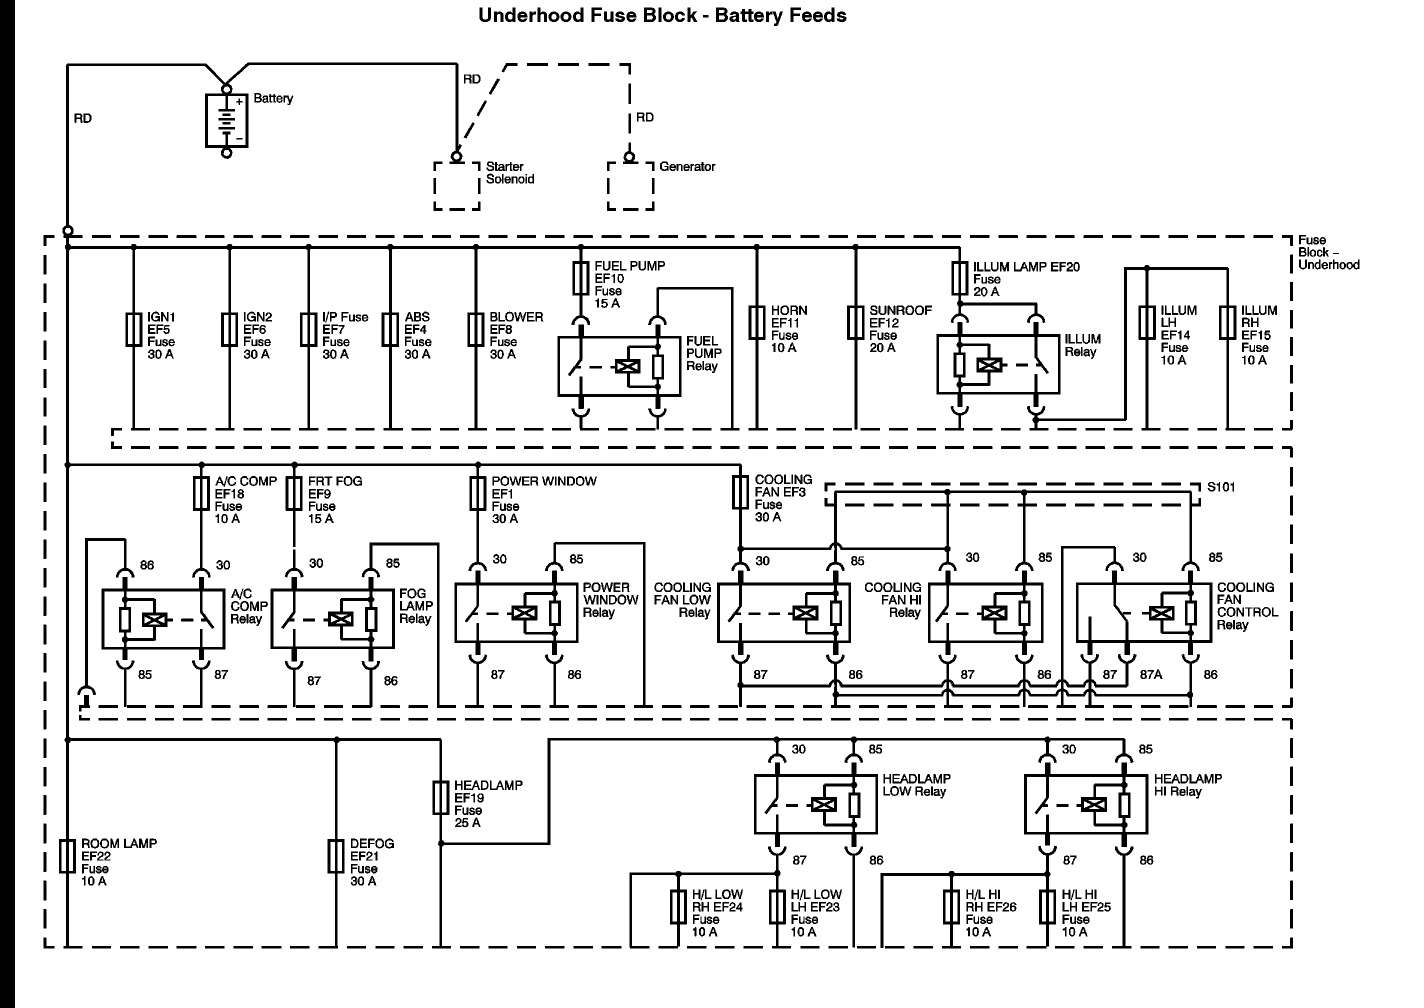 2005 aveo power and ground distribution diagrams image resized click this bar to view the full size image in a new window